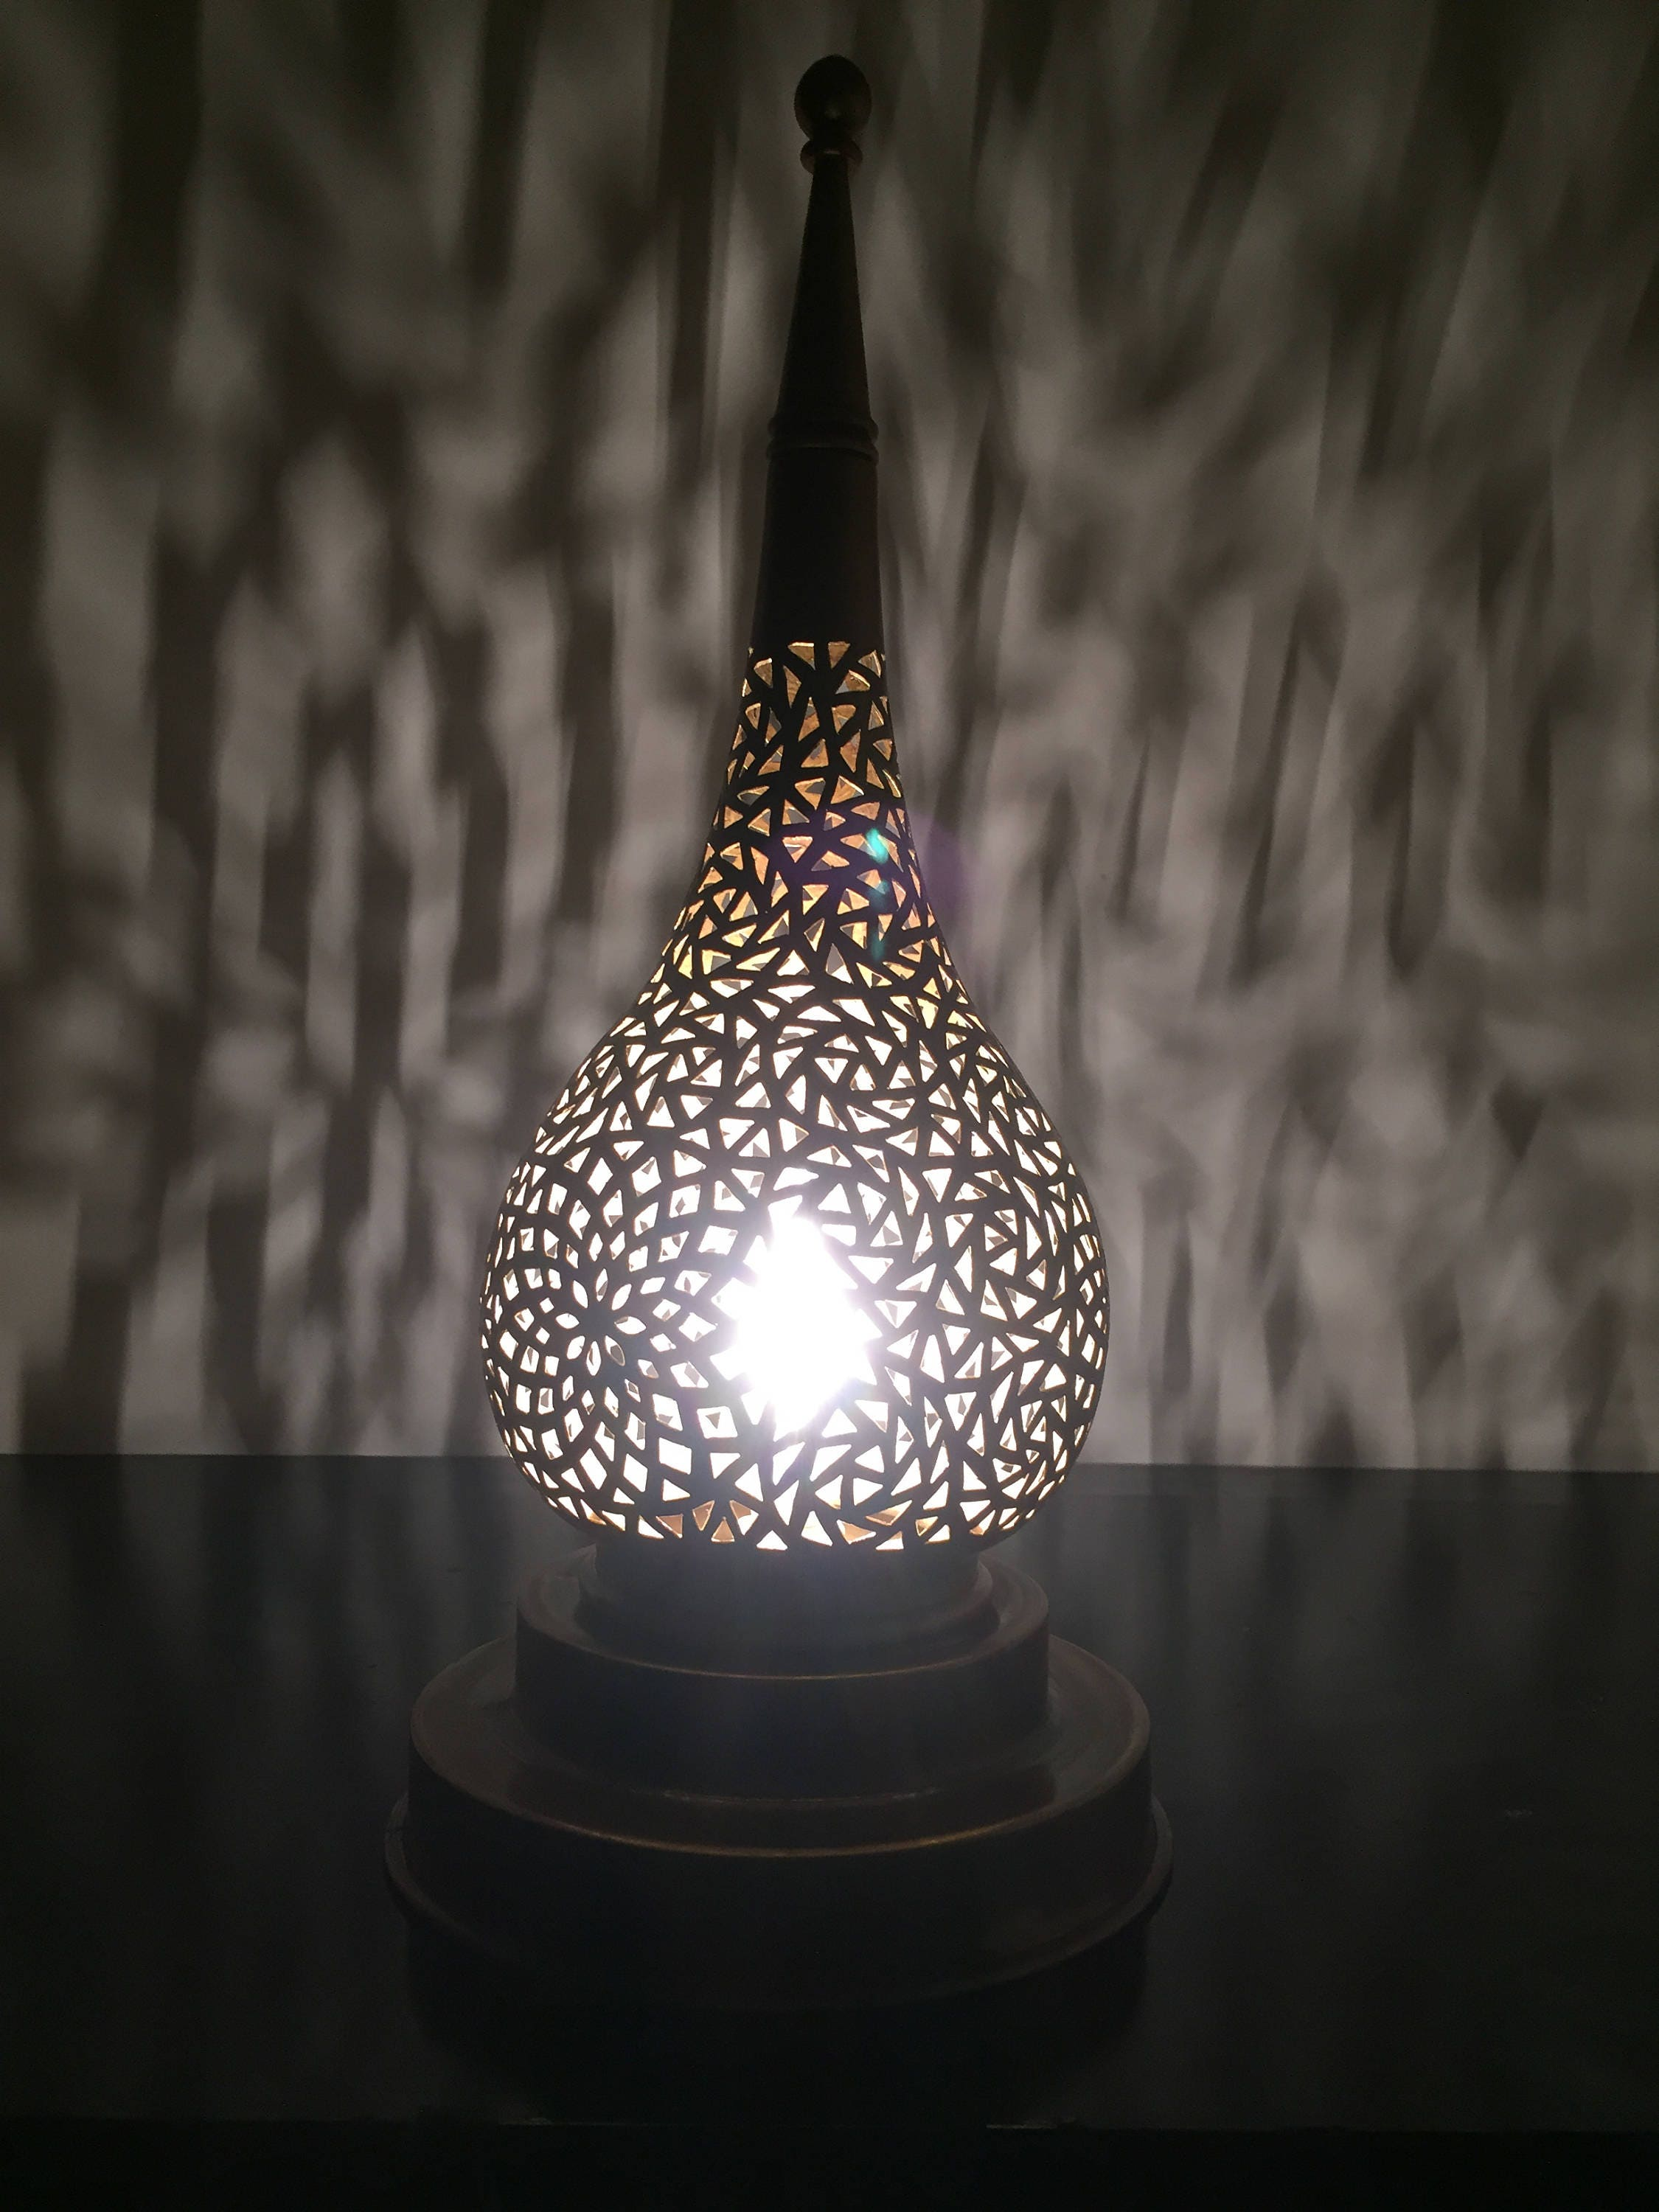 arabic tricolor fanoos fbx blend lamp decor dae model models mtl obj furniture cgtrader